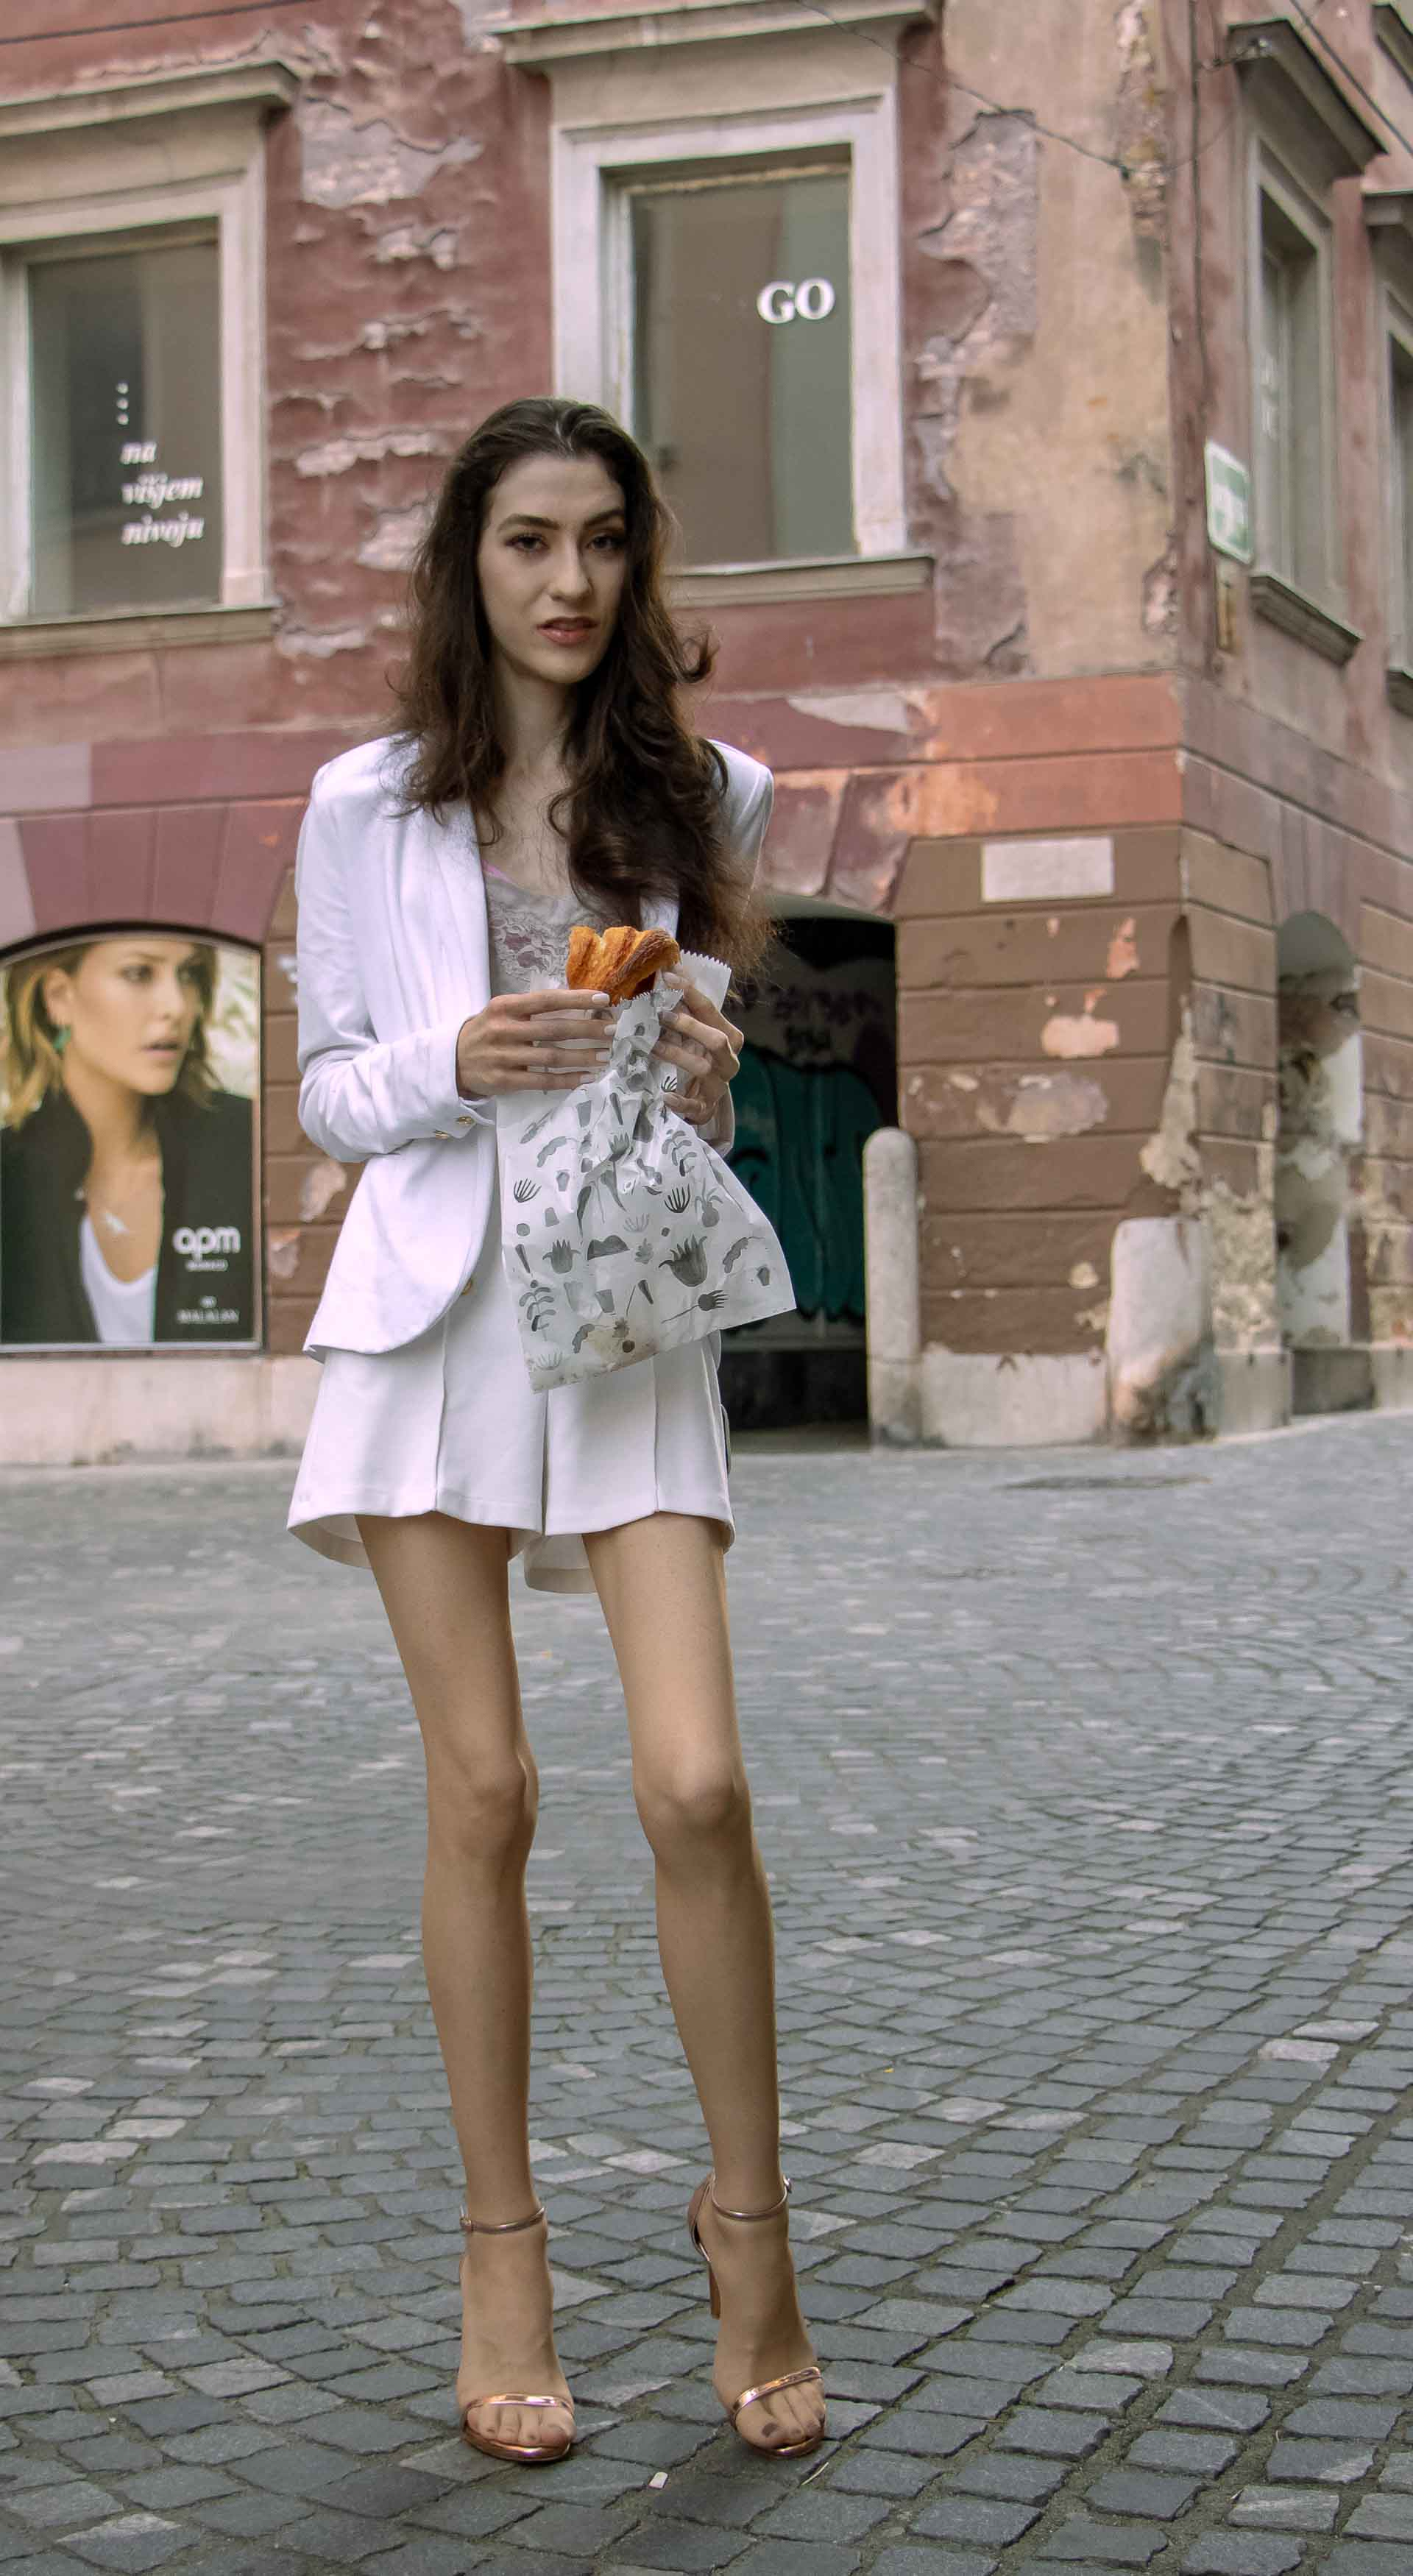 Beautiful Slovenian Fashion Blogger Veronika Lipar of Brunette from Wall wearing all in white suit, white blazer, white tailored shorts, Stuart Weitzman high shine metallic nudist song sandals, shoulder bag while eating a croissant on the street in the morning after night out clubbing